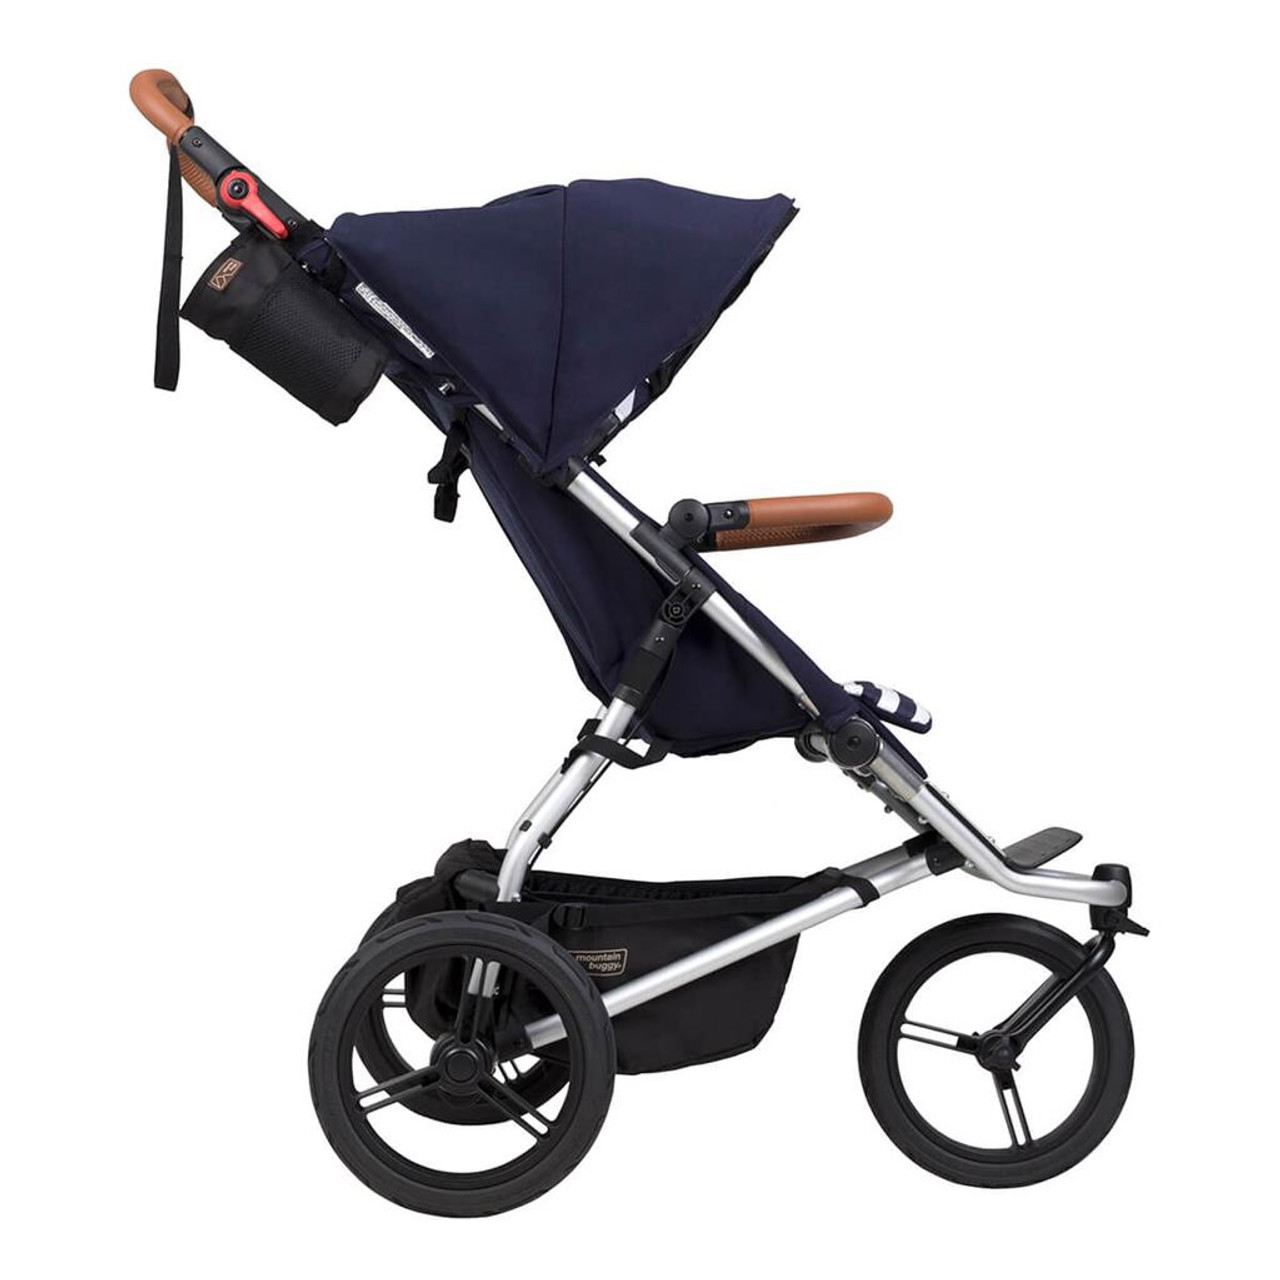 Mountain Buggy Urban Jungle Luxury Collection Nautical 2021 | Baby Barn Discounts Mountain Buggy luxury delivers refined aesthetics of hand-stitched leather accents.